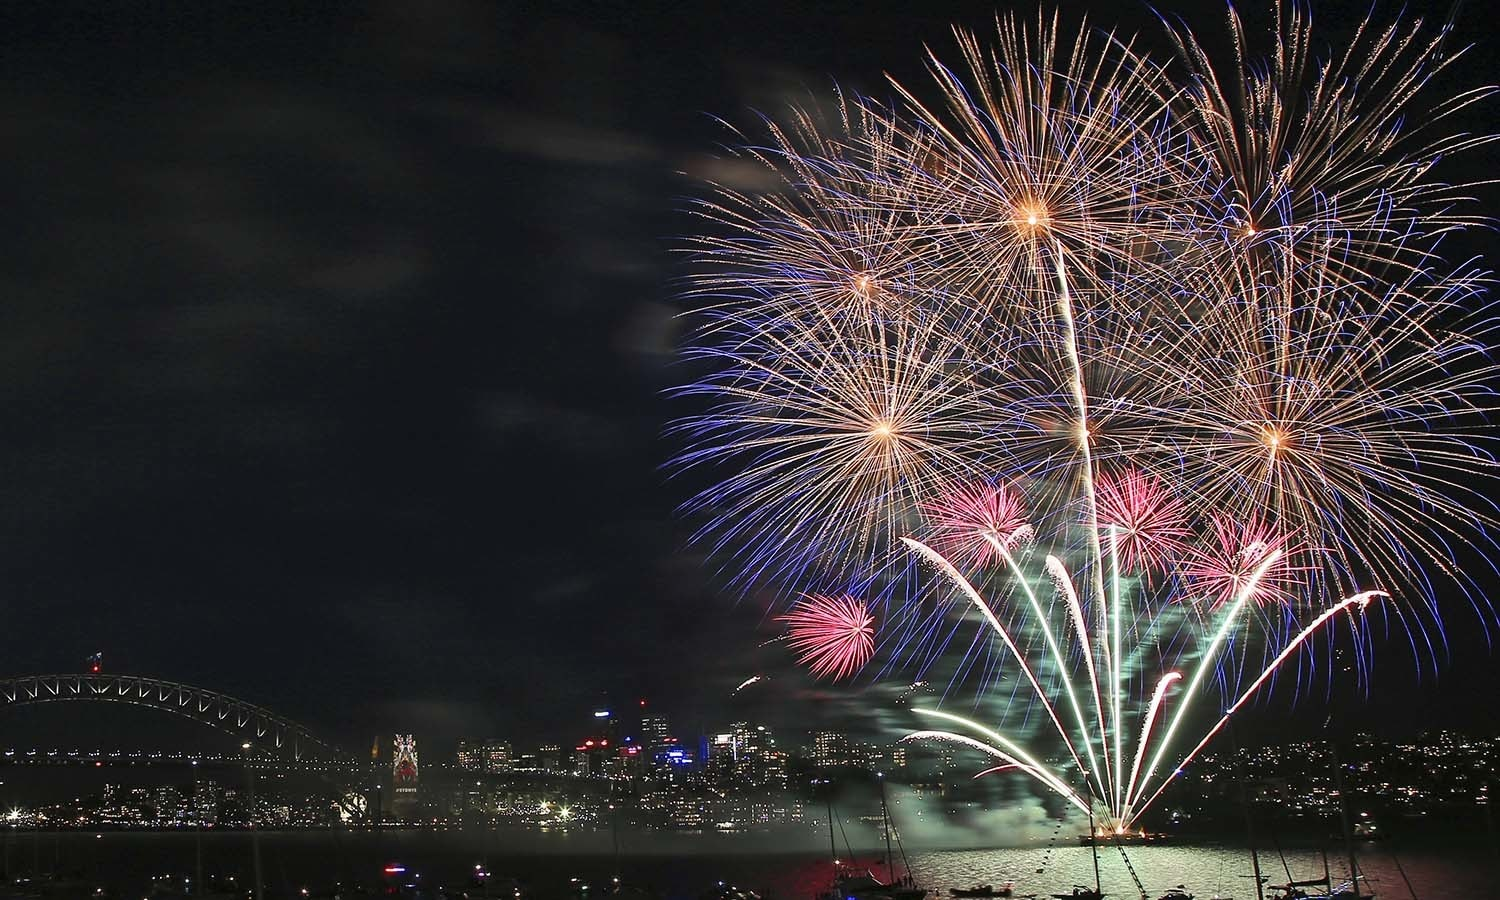 Fireworks explode over the Opera House and Harbour Bridge during the 9pm fireworks display over the Harbour Bridge and Opera House in Sydney, Australian, Thursday, Dec. 31, 2015.(AP Photo/Rob Griffith)